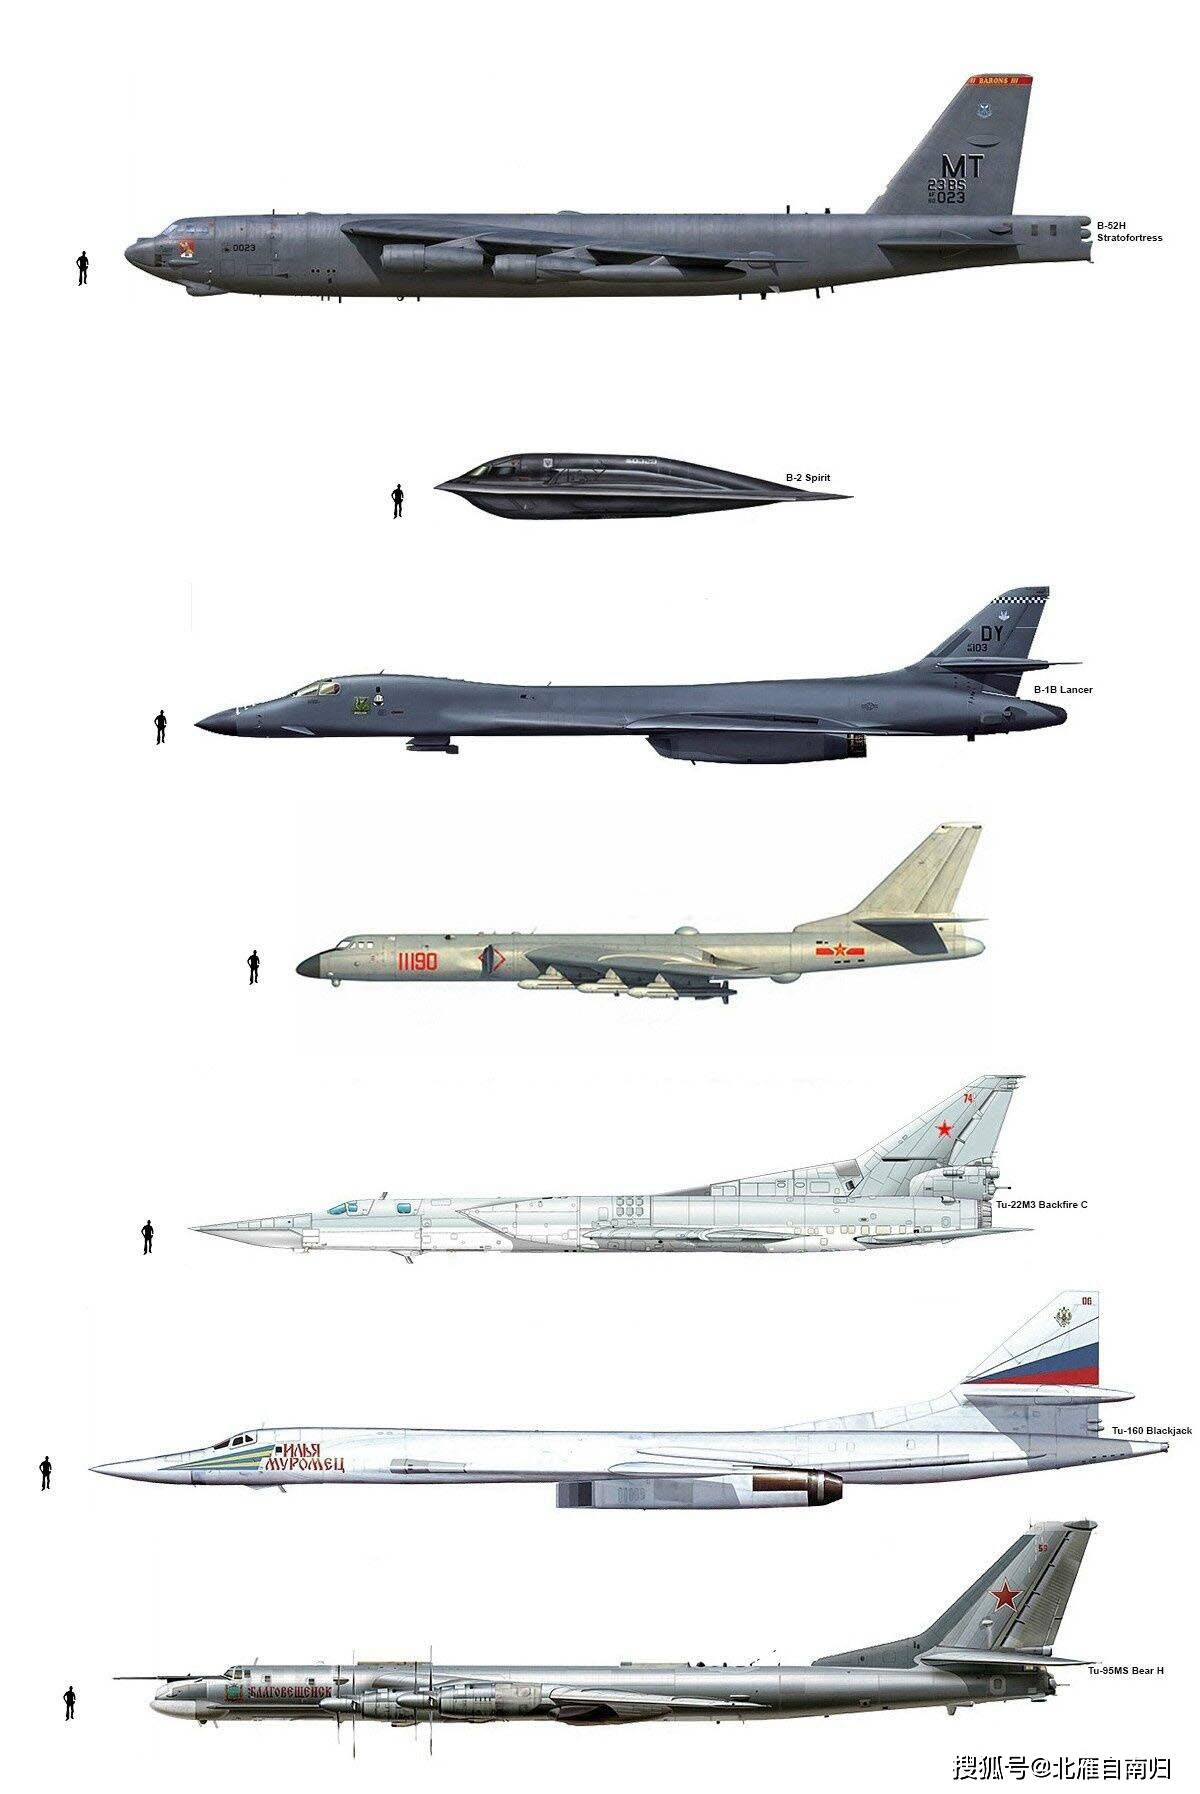 Comparison chart with other active strategic bomber